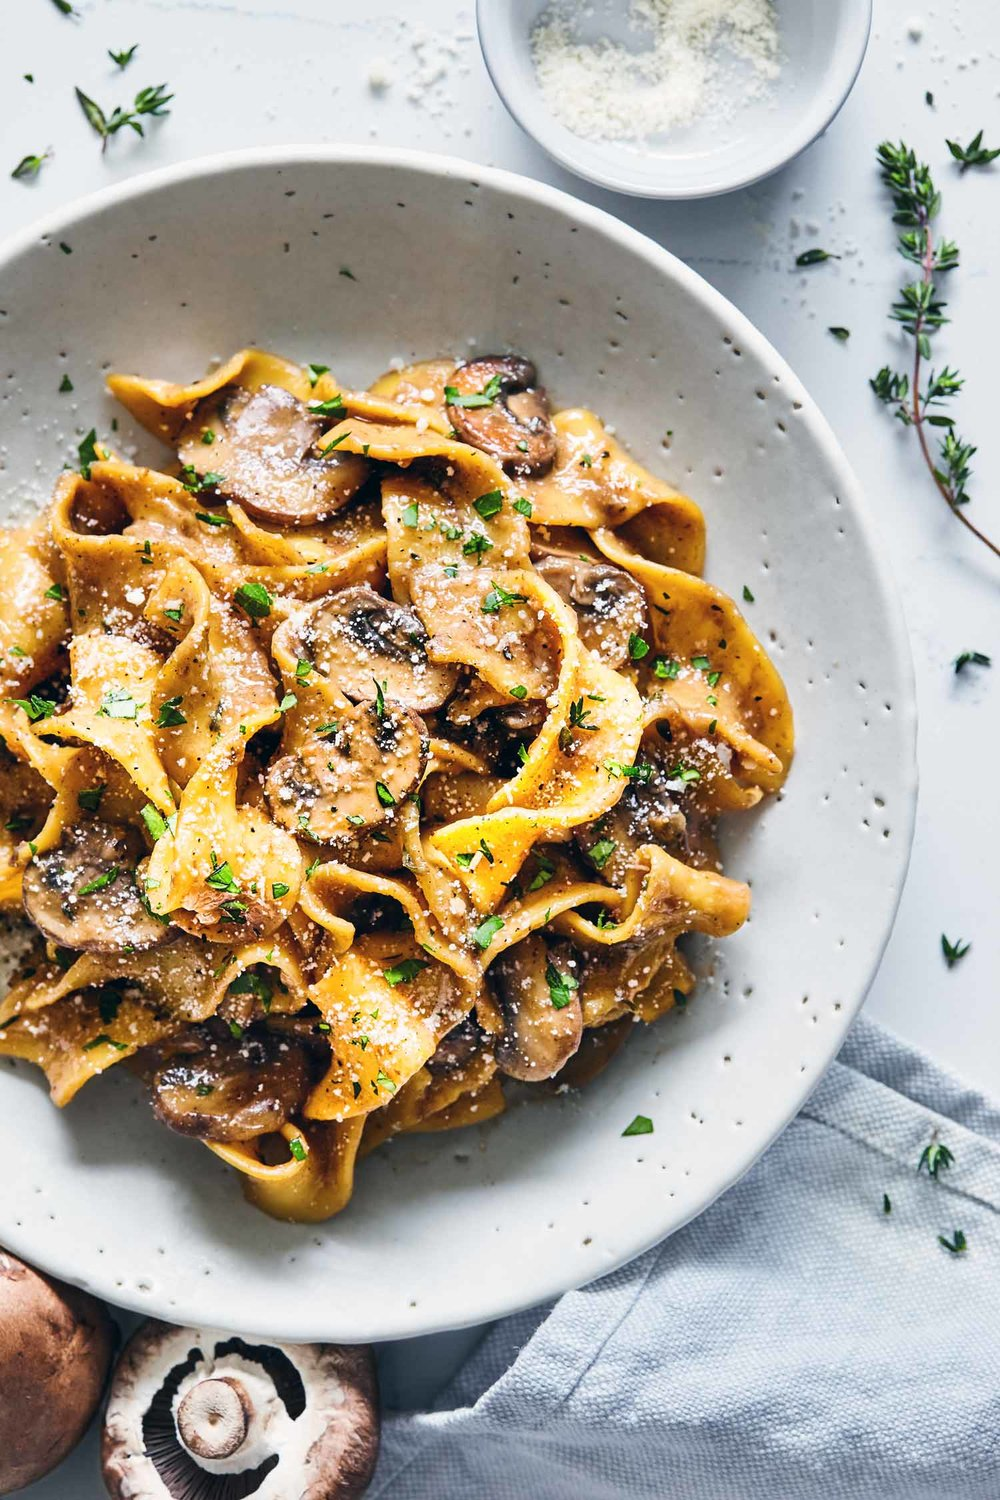 Mushroom Stroganoff | Evergreen Kitchen | Vegan & Gluten Free Options